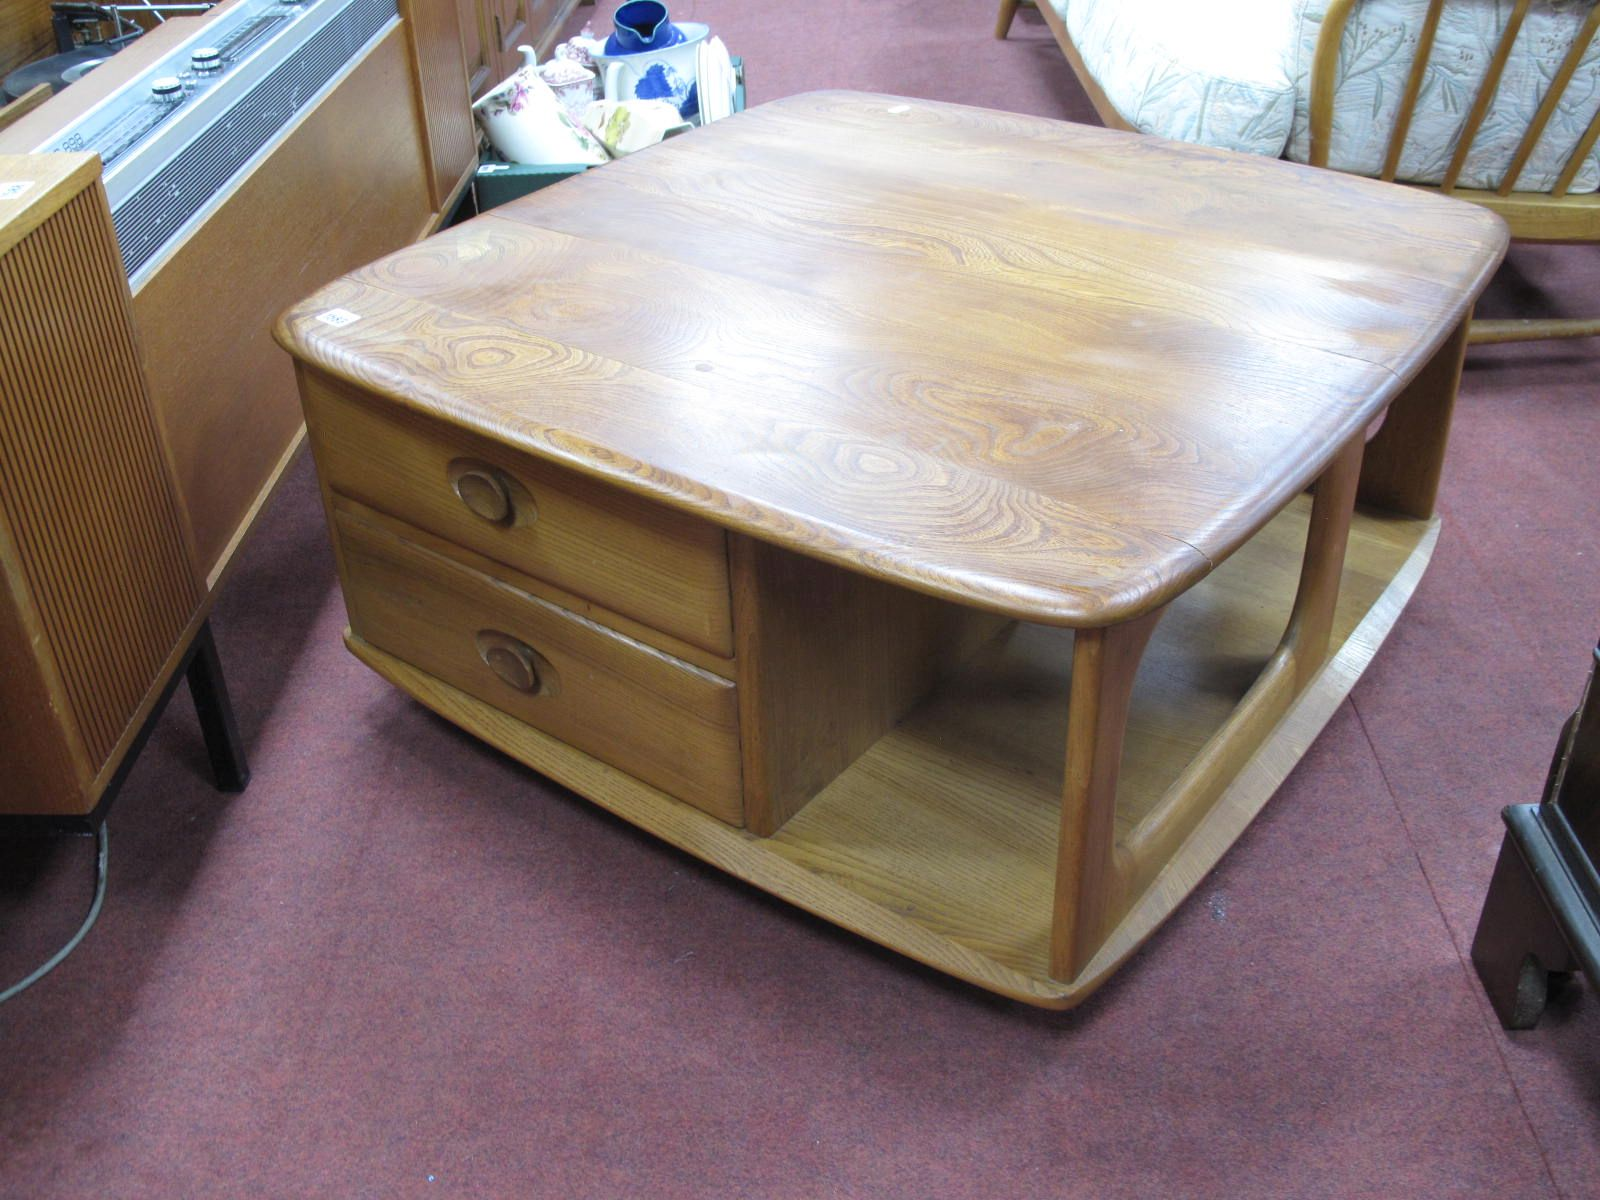 An Ercol Coffee Table, of square form, with rounded corners, two drawers and open magazine